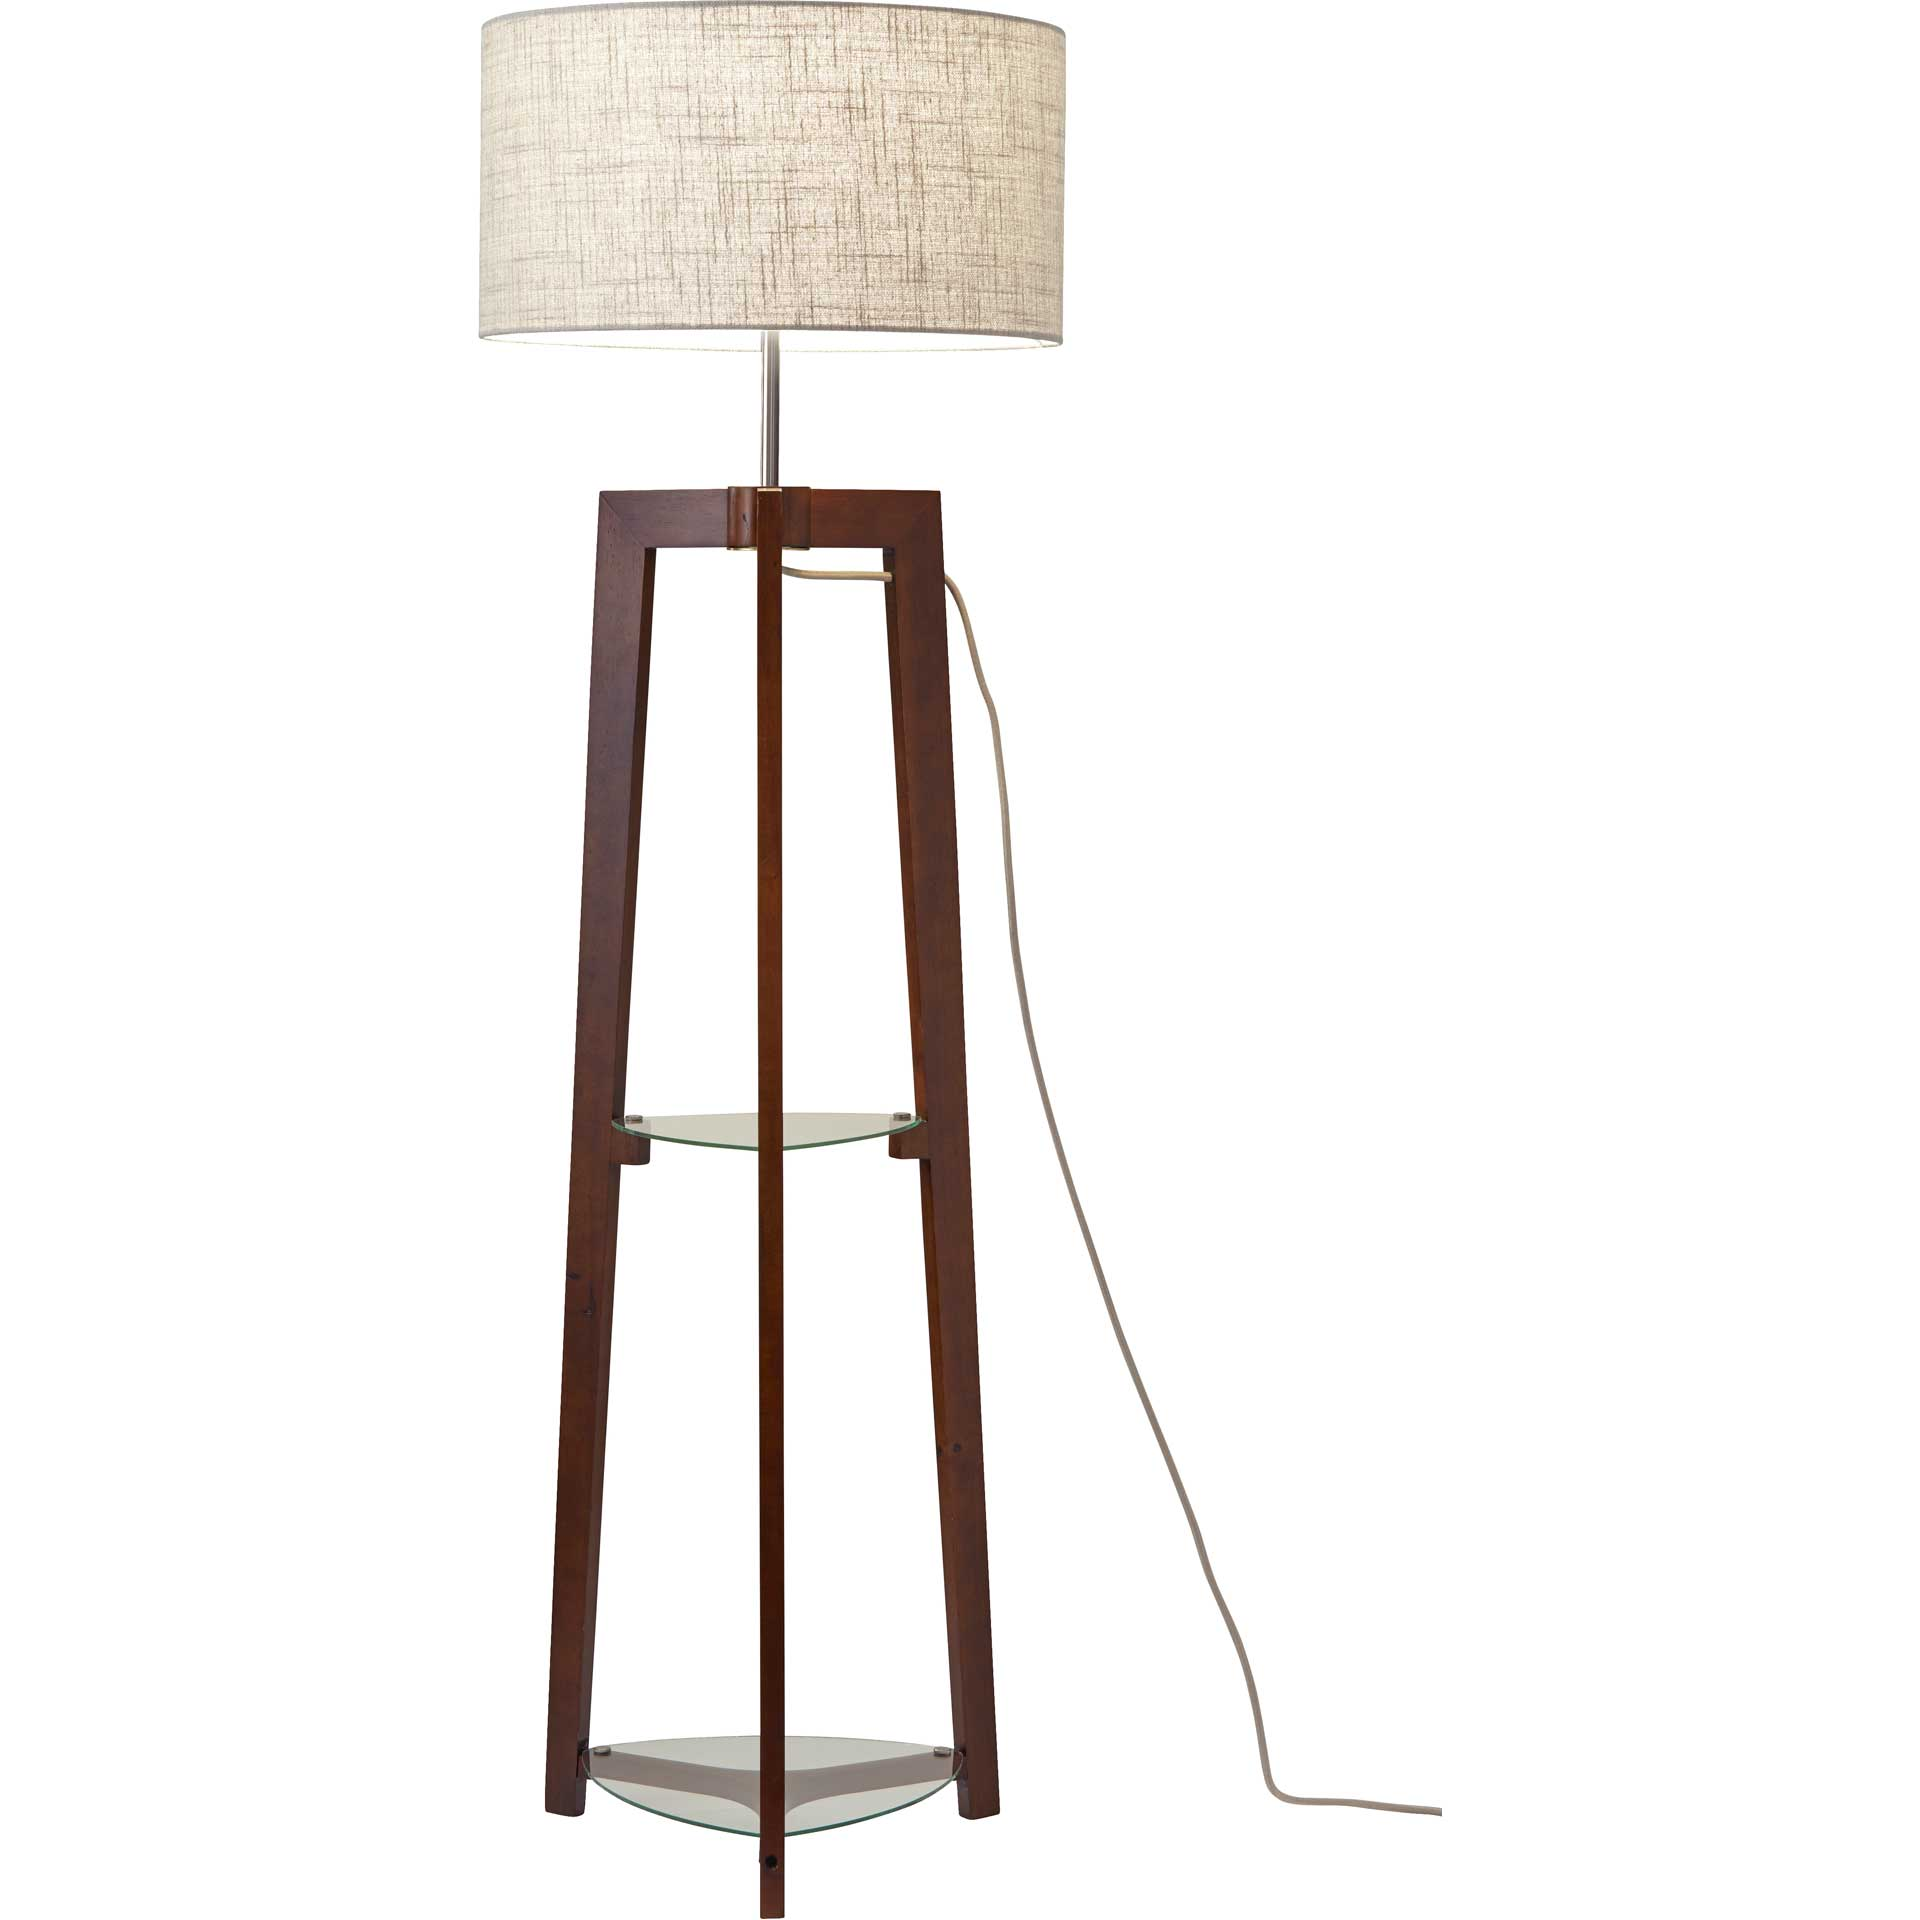 Herblay Shelf Floor Lamp Walnut